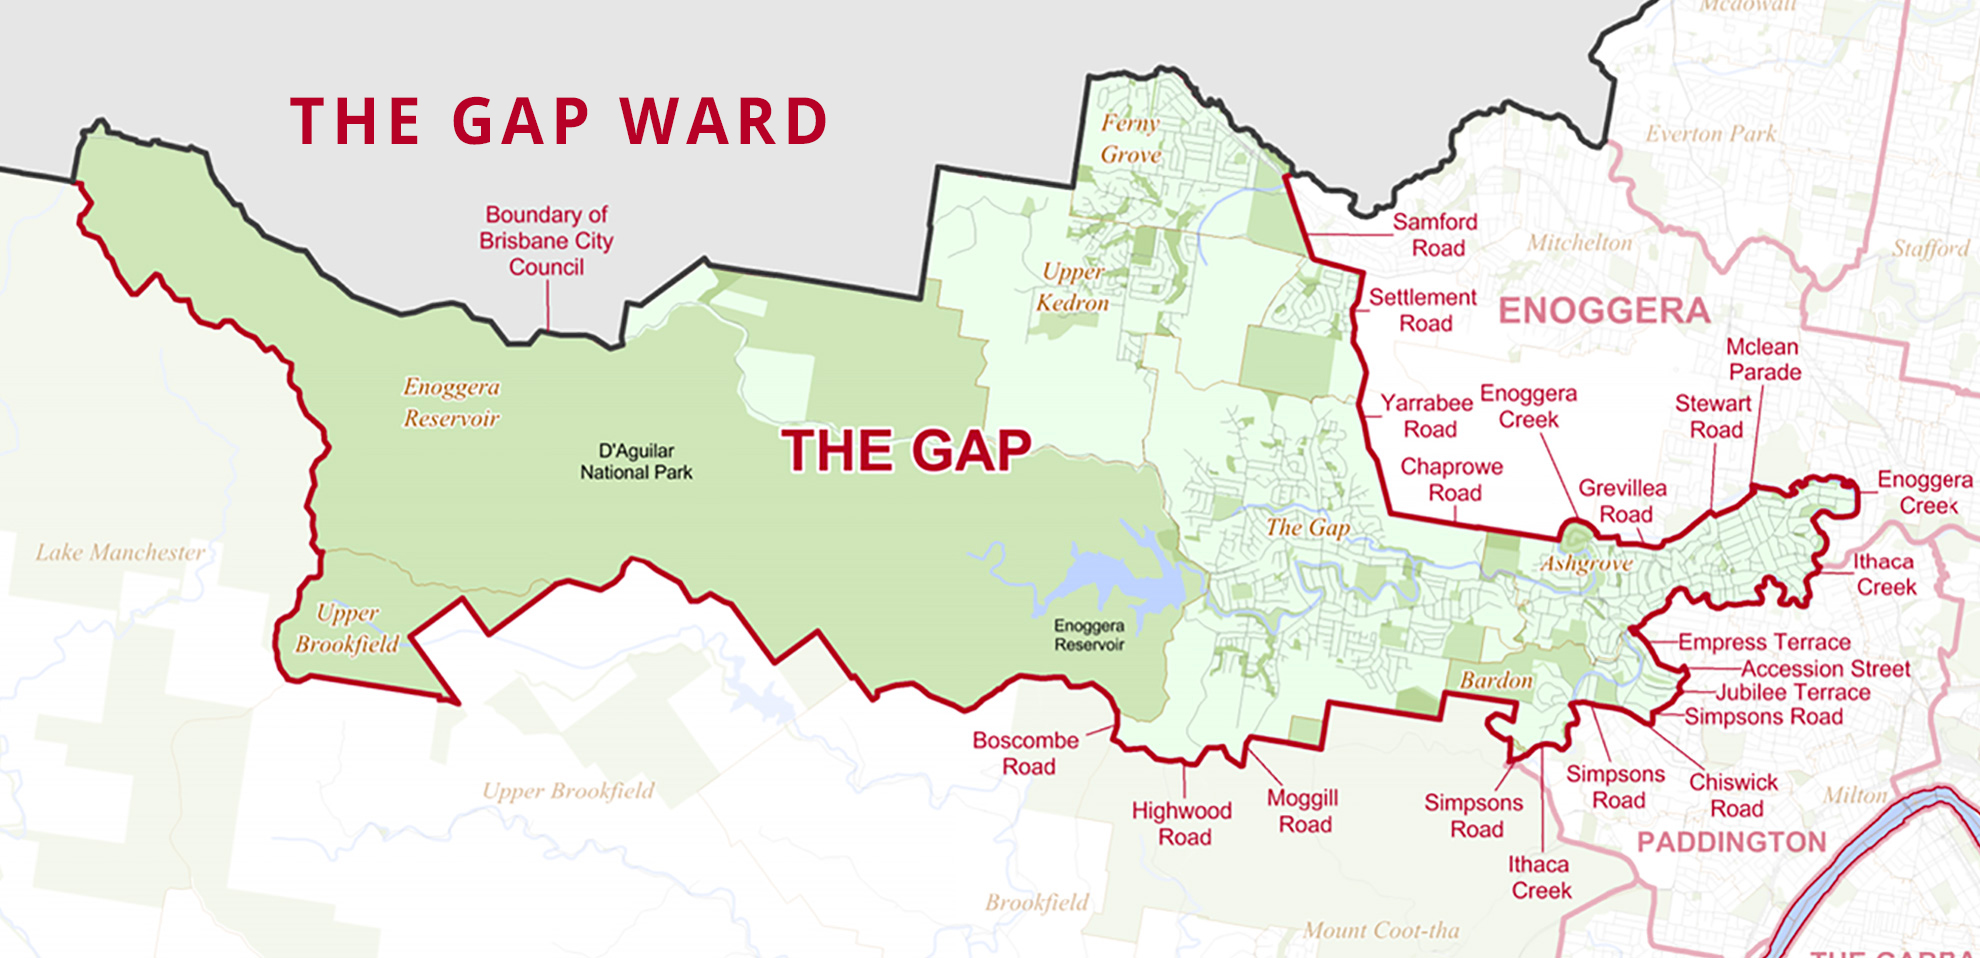 The Gap Ward map